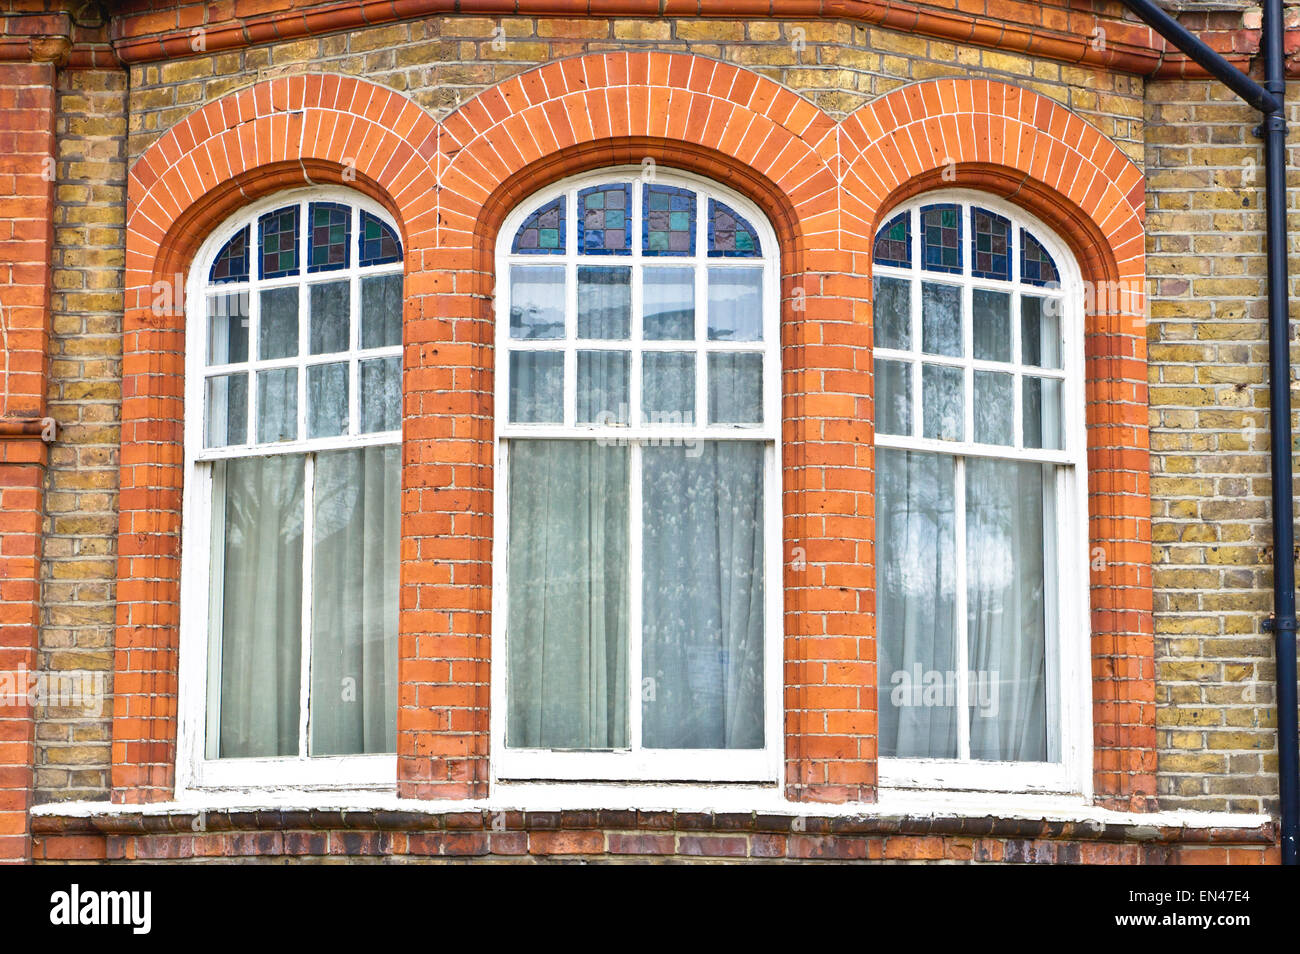 Arch windows in a red brick building in London, UK Stock Photo